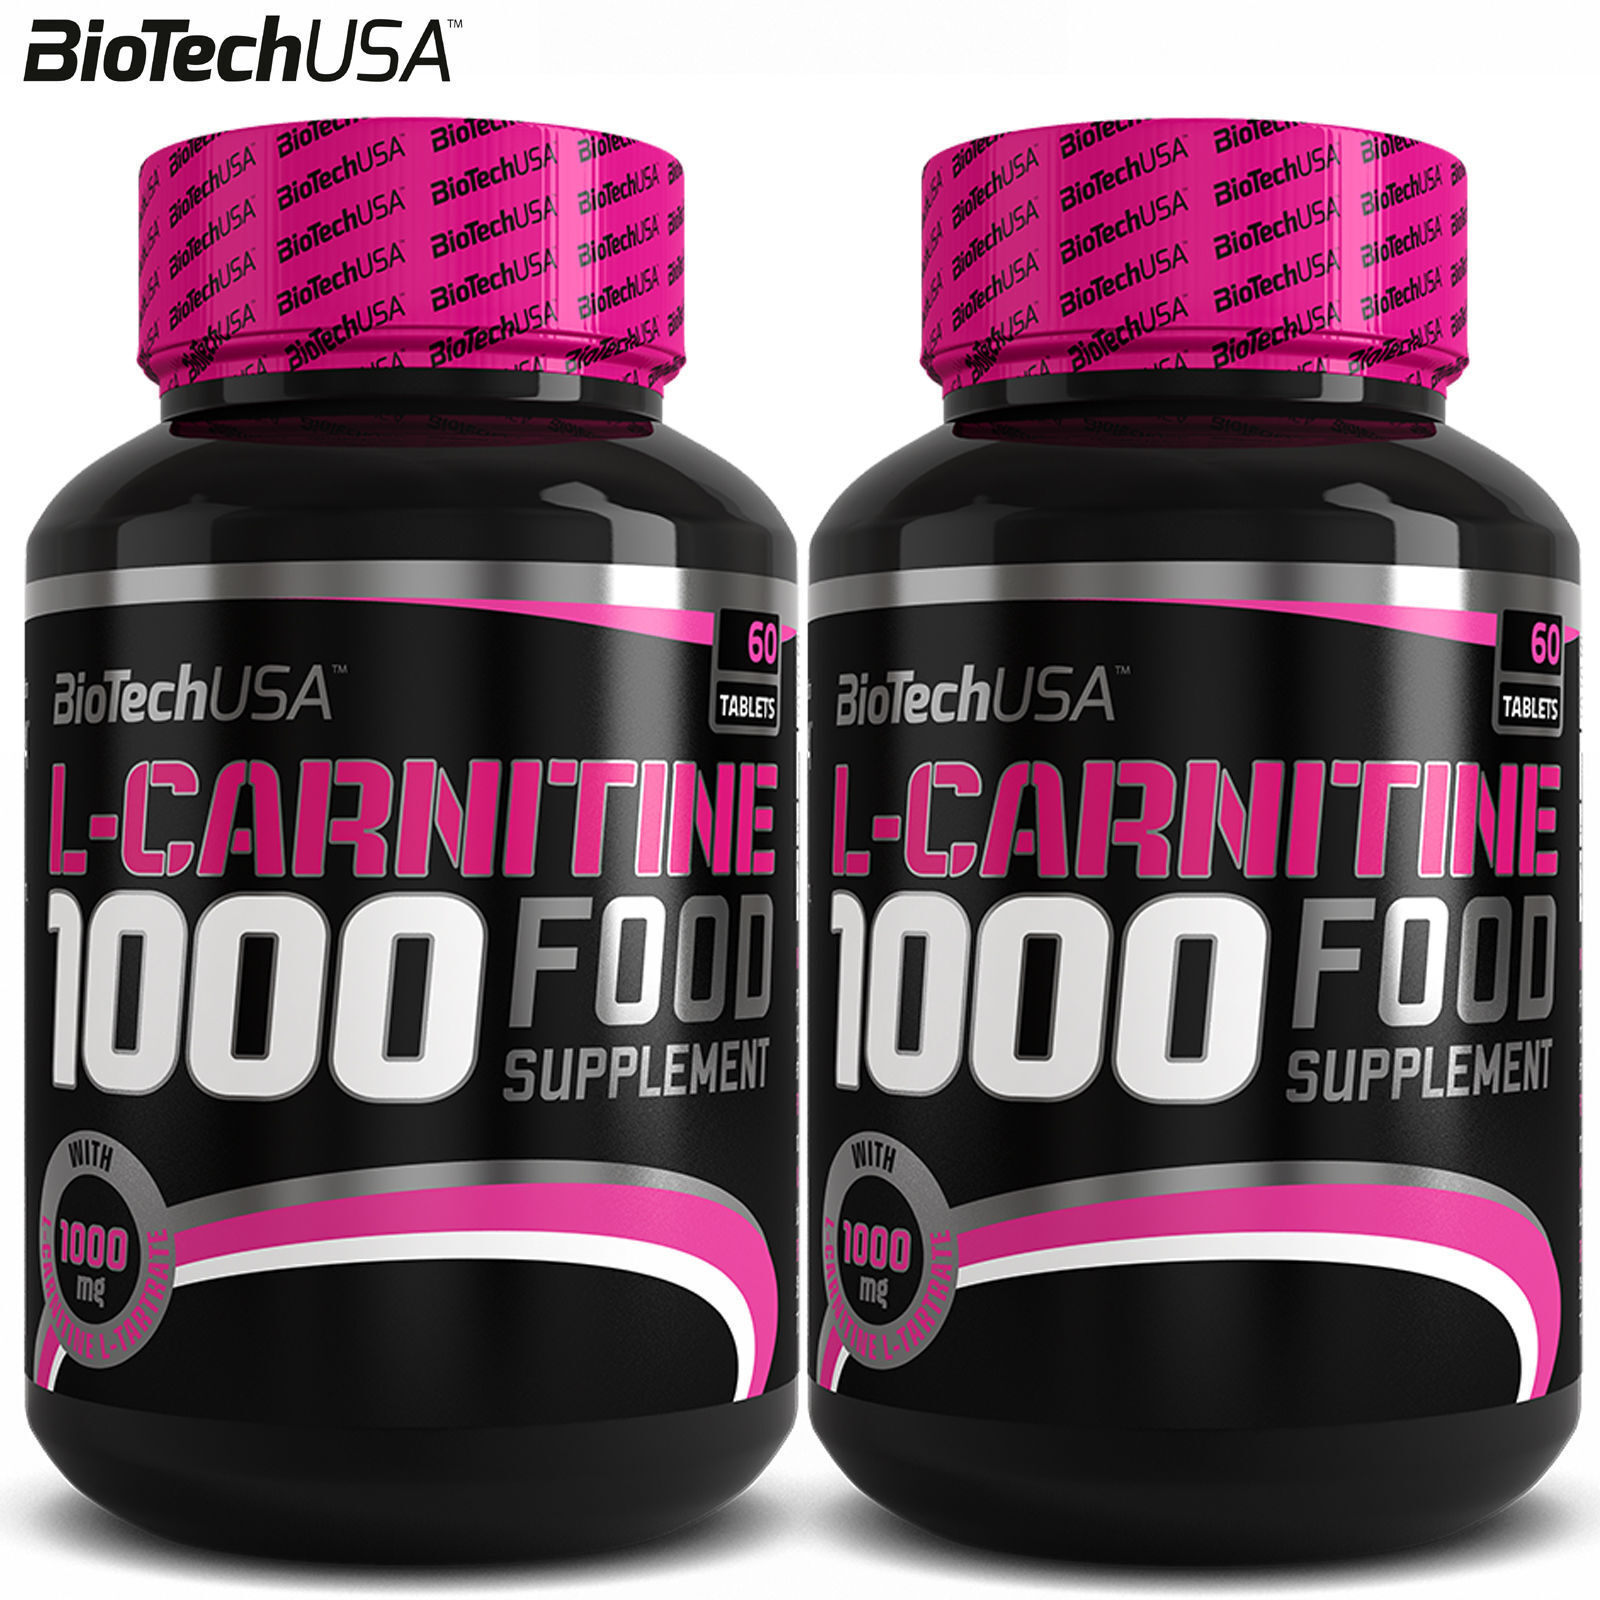 L-Carnitine 1000 60/120Tabl Fat Burner Slimming Weight Loss Management Reduction 1